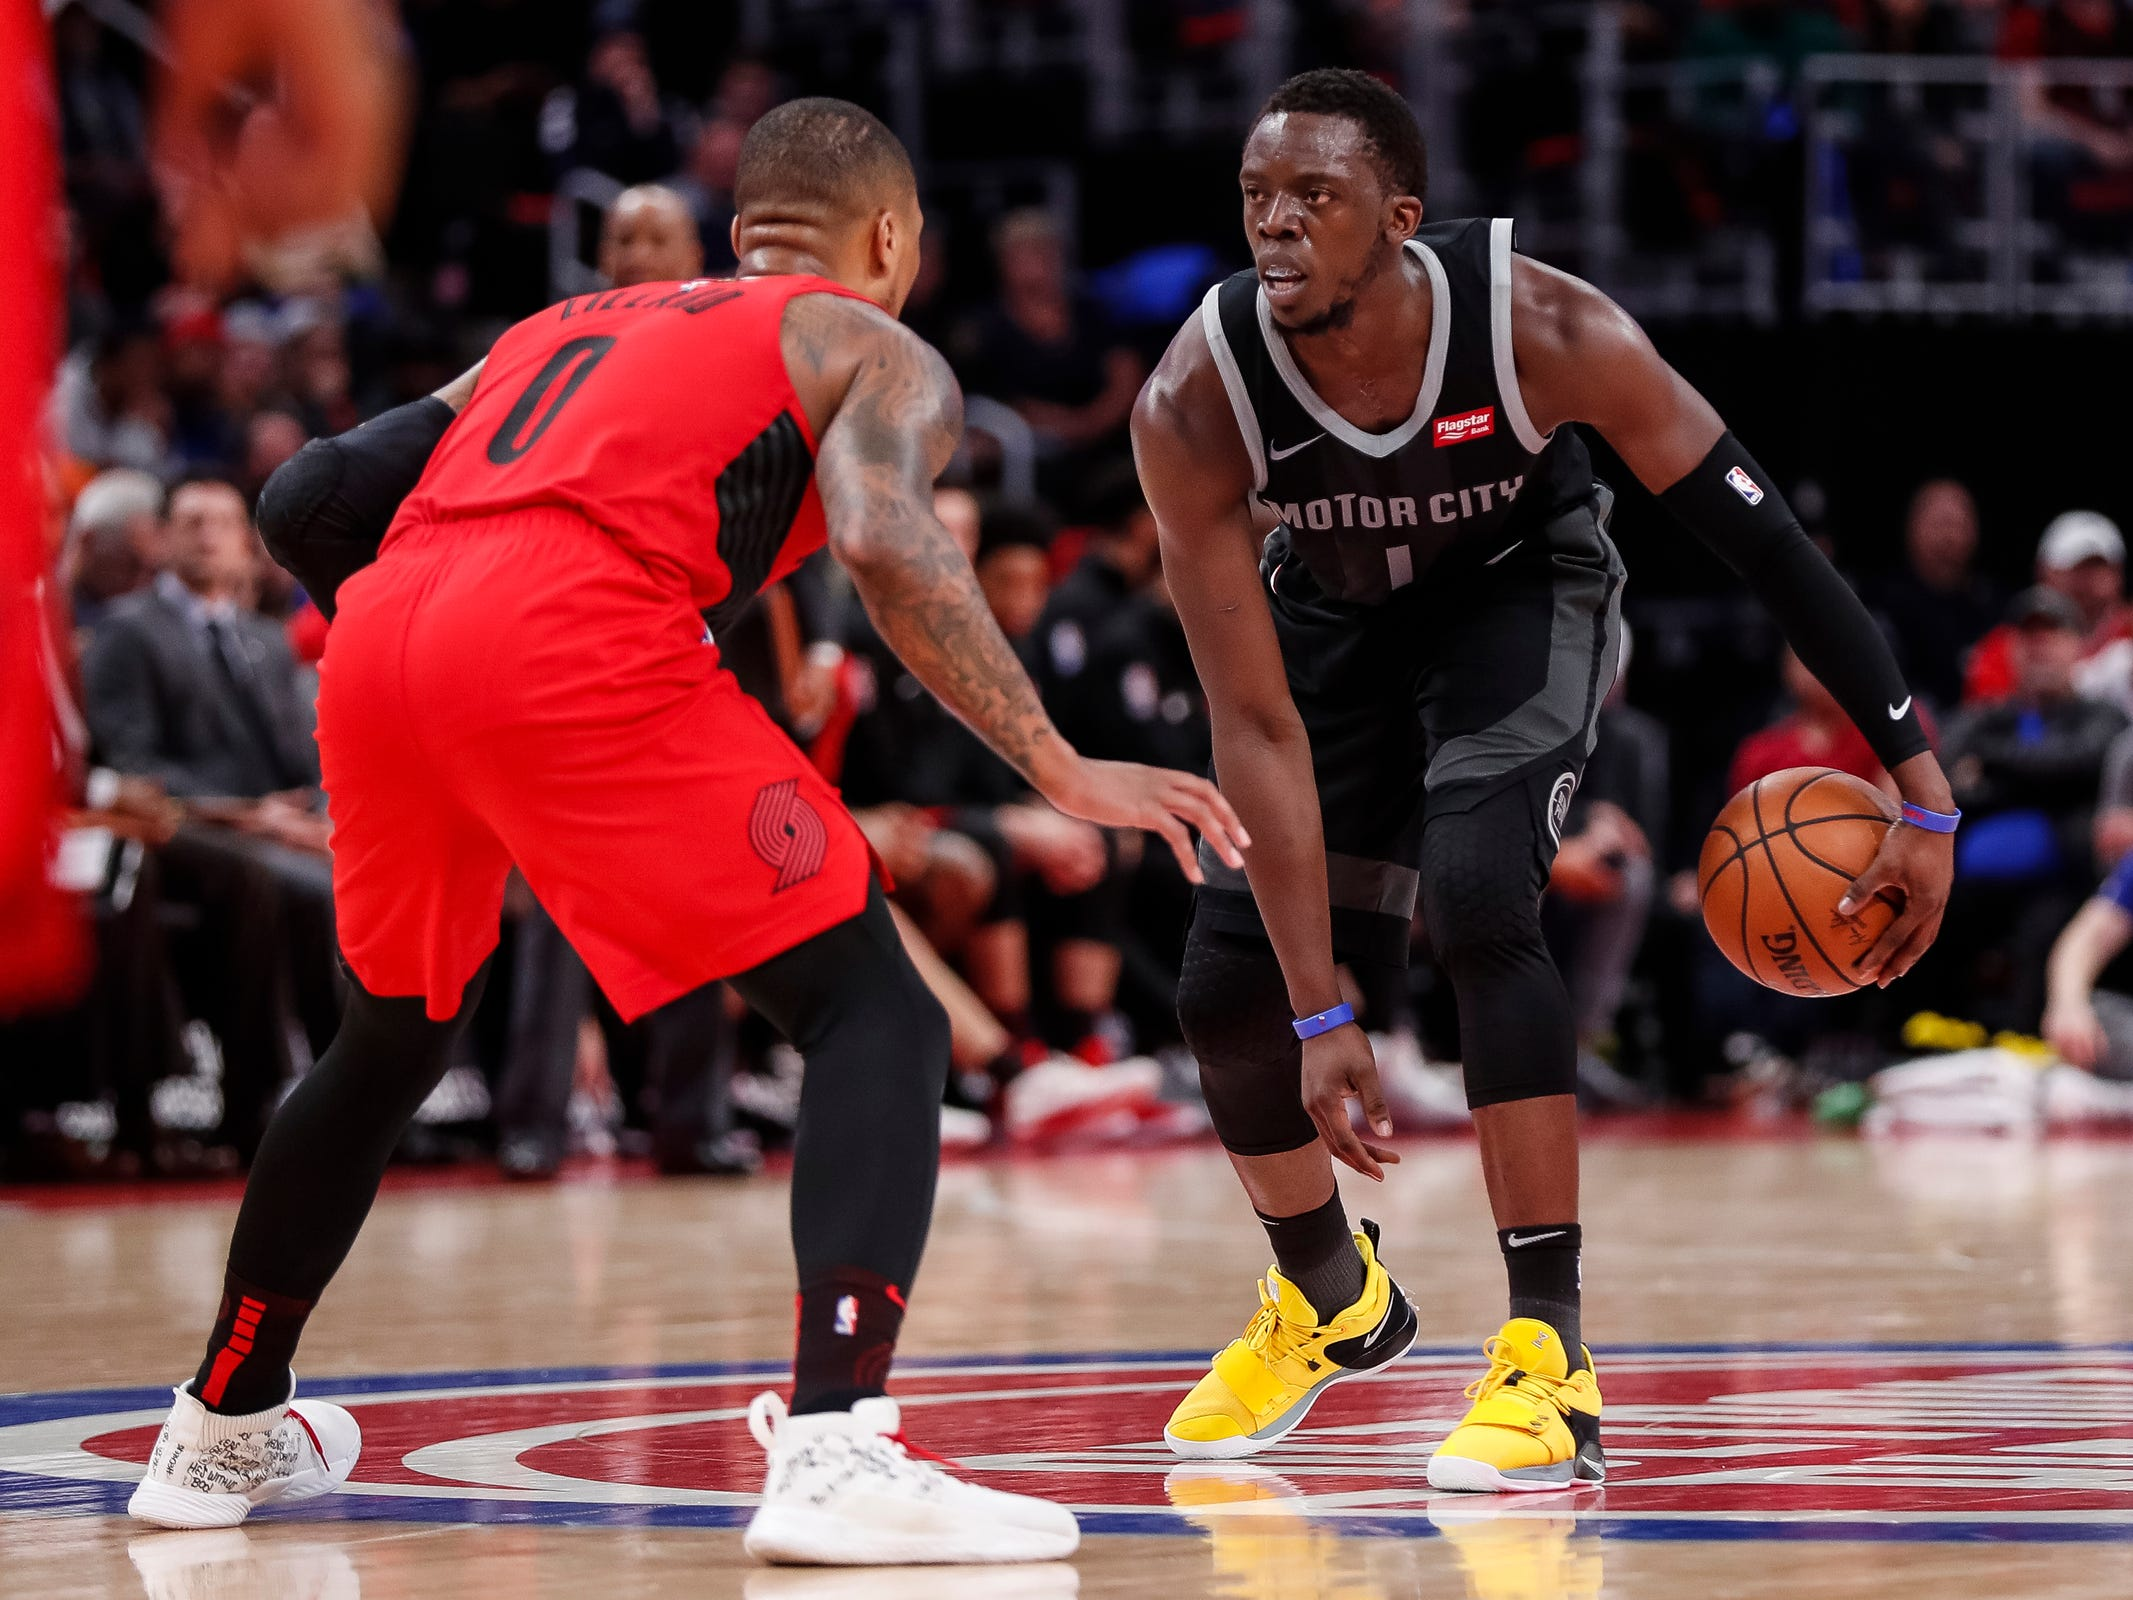 Reggie Jackson dribbles against Portland Trail Blazers guard Damian Lillard during the second half of the Detroit Pistons' 99-90 win Saturday, March 30, 2019, at Little Caesars Arena.